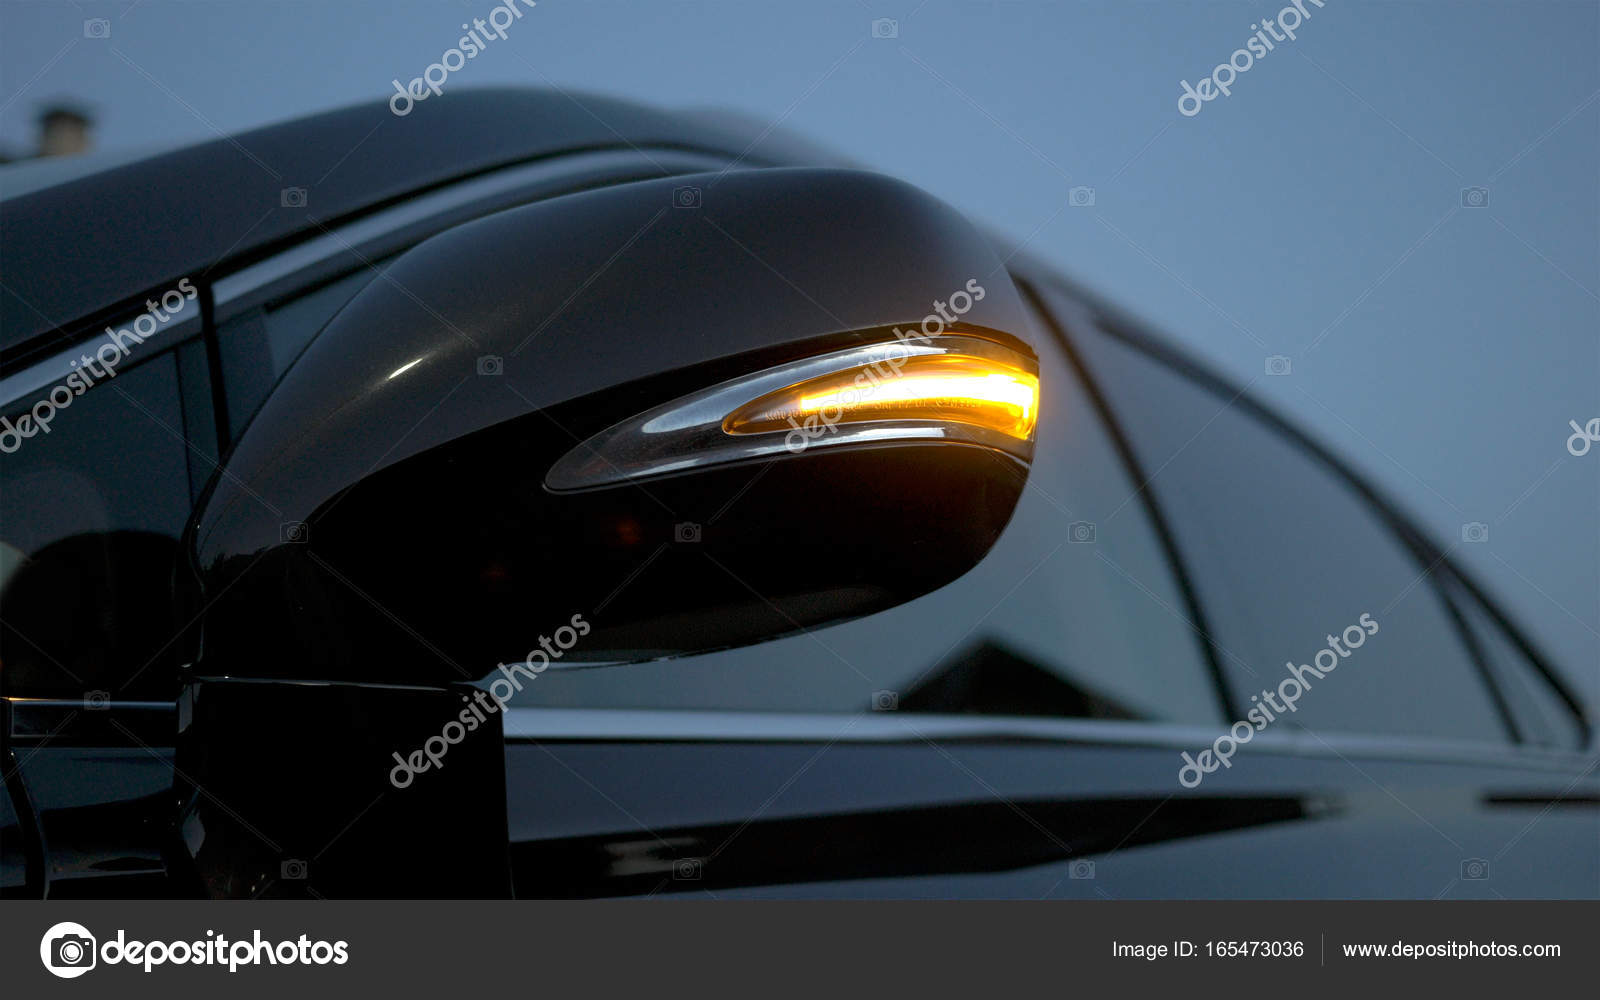 car rear-view mirror. direction indicator is flashing at evening